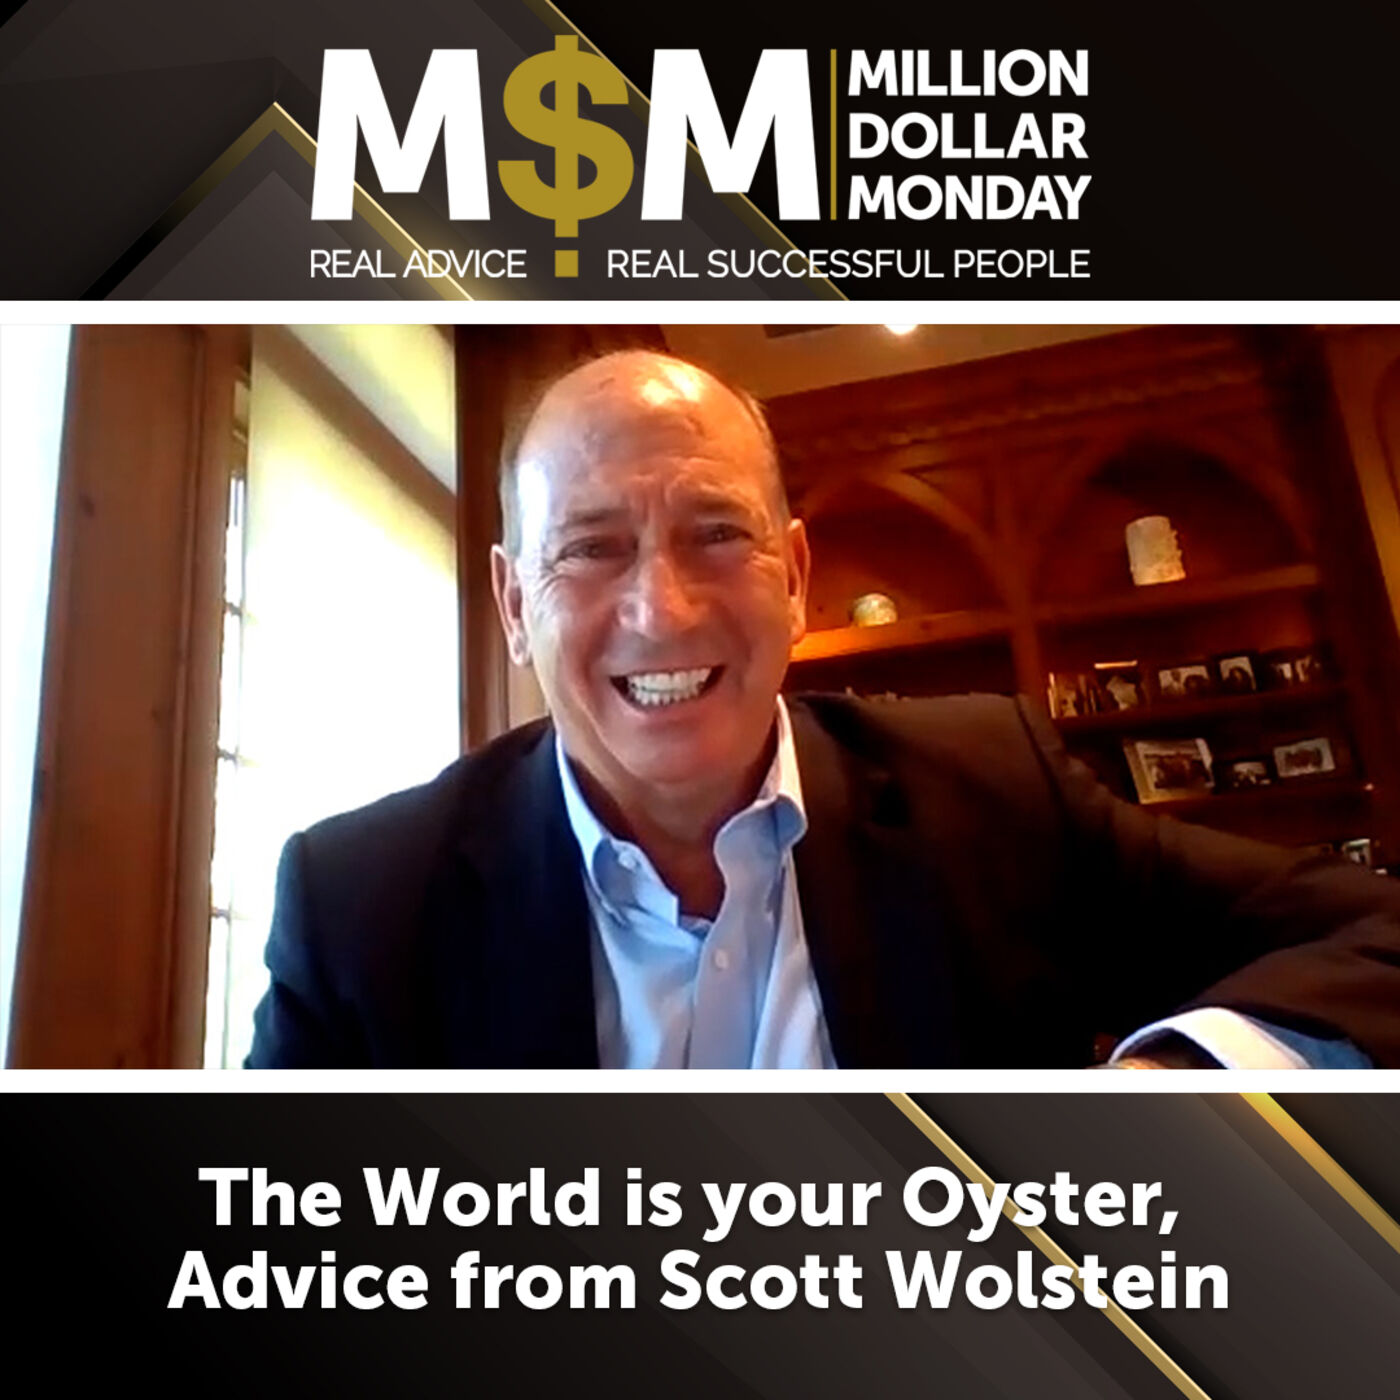 The World is your Oyster, Advice from Scott Wolstein